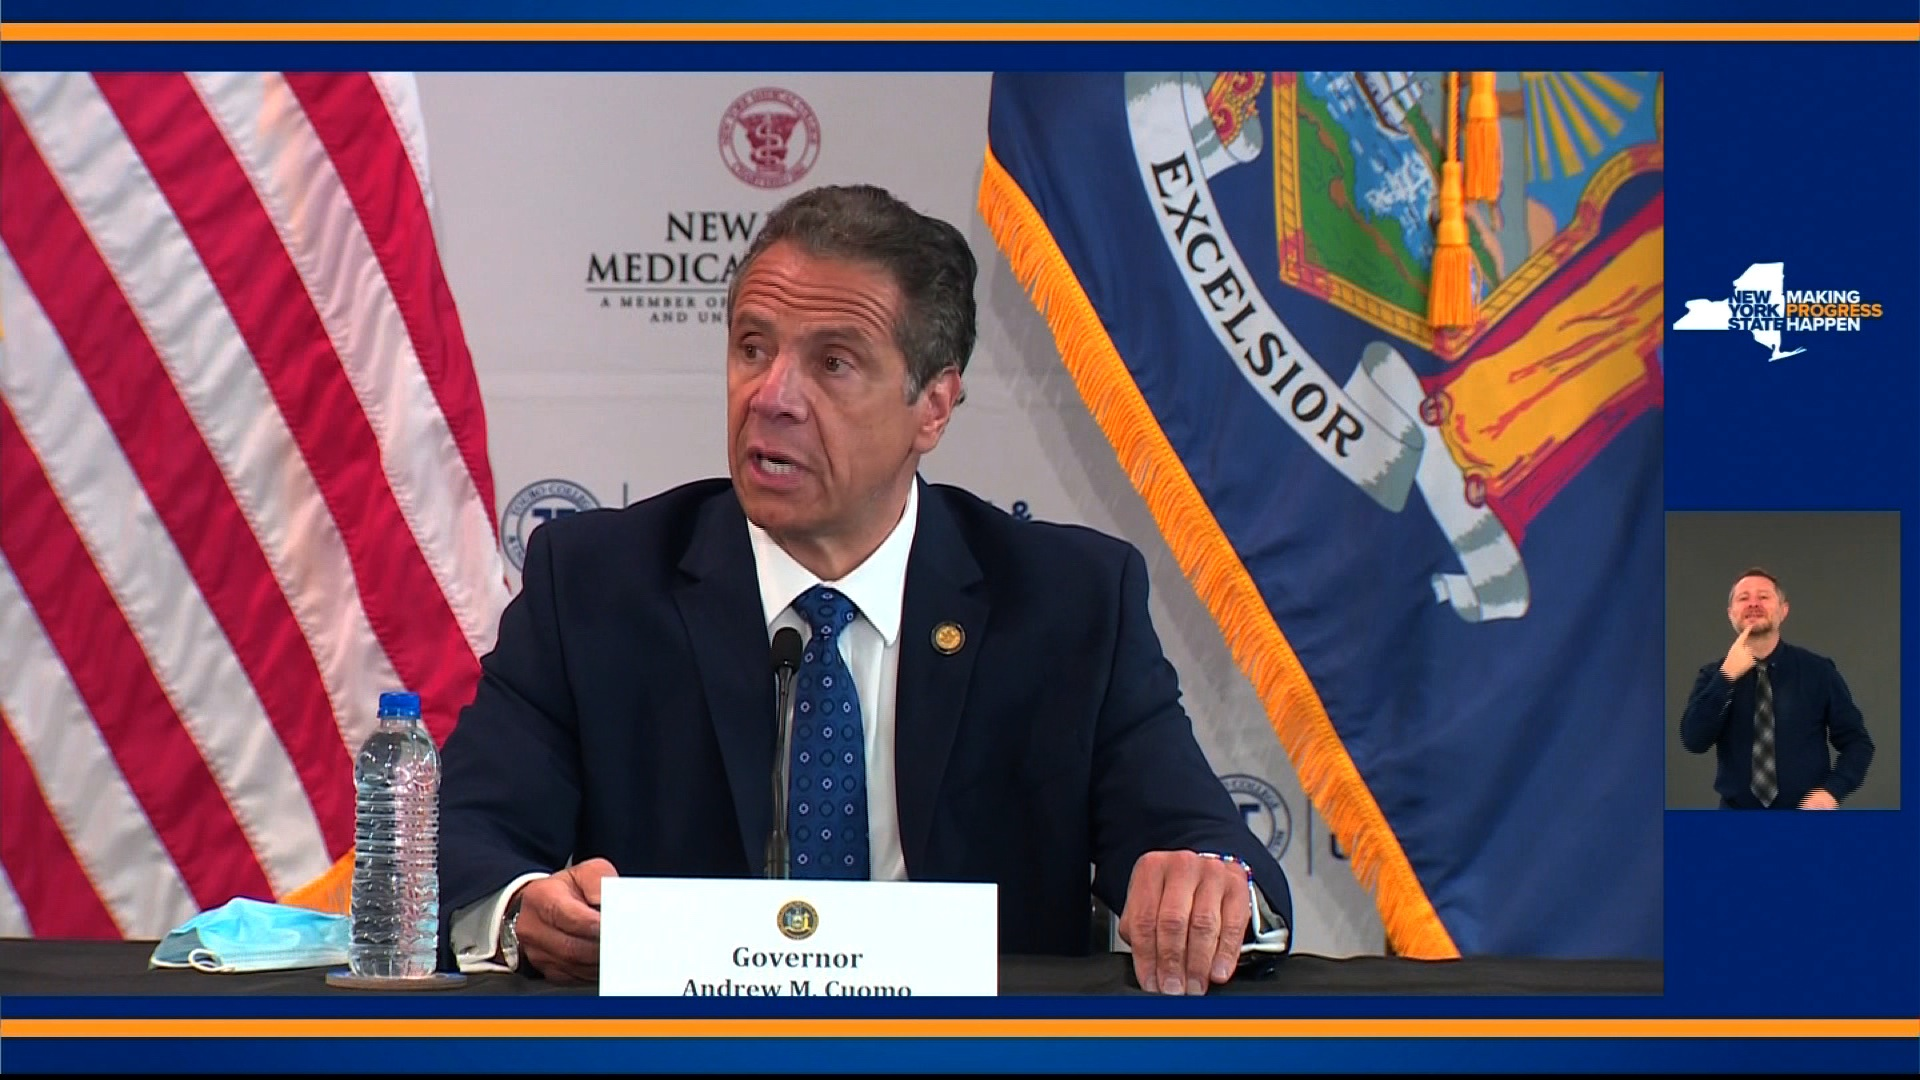 New York Gov. Andrew Cuomo speaks during a press conference in Valhalla, New York, on June 9.